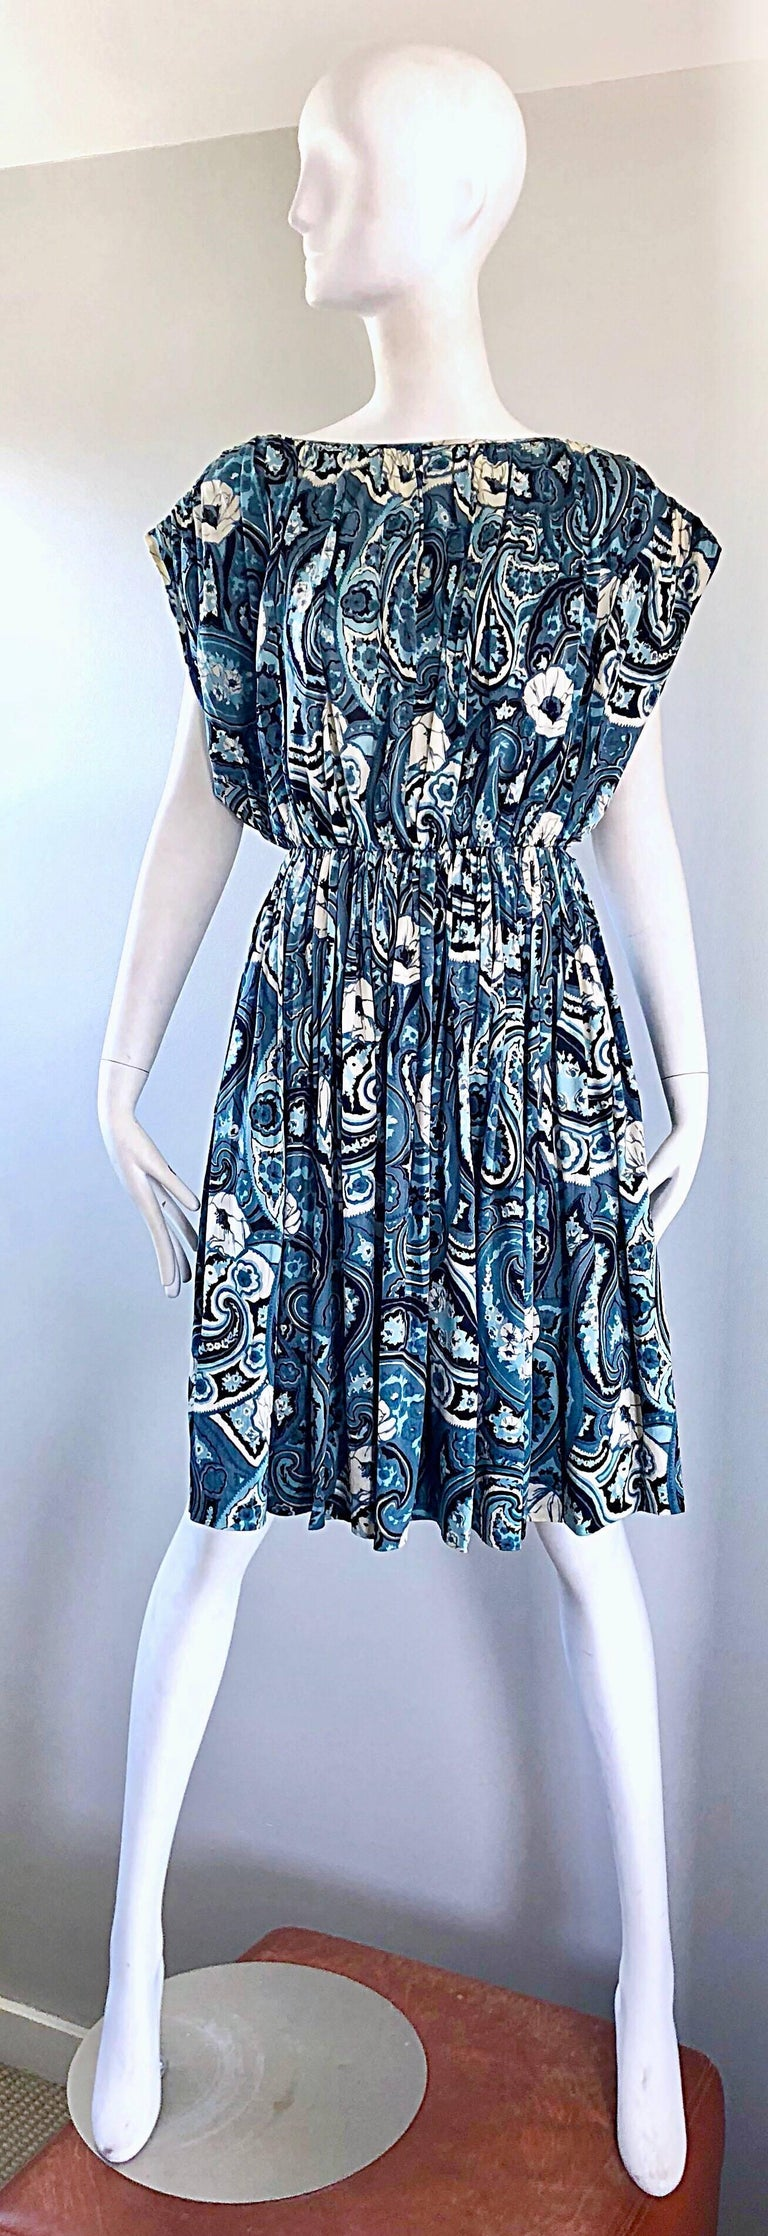 Beautiful and rare TOWNLEY for NEIMAN MARCUS blue and white paisley flower print Avant Garde silk dress! While Townley was recognized as the manufacturer of Claire McCardell, the solo Townley label was only around for a very short period of time.